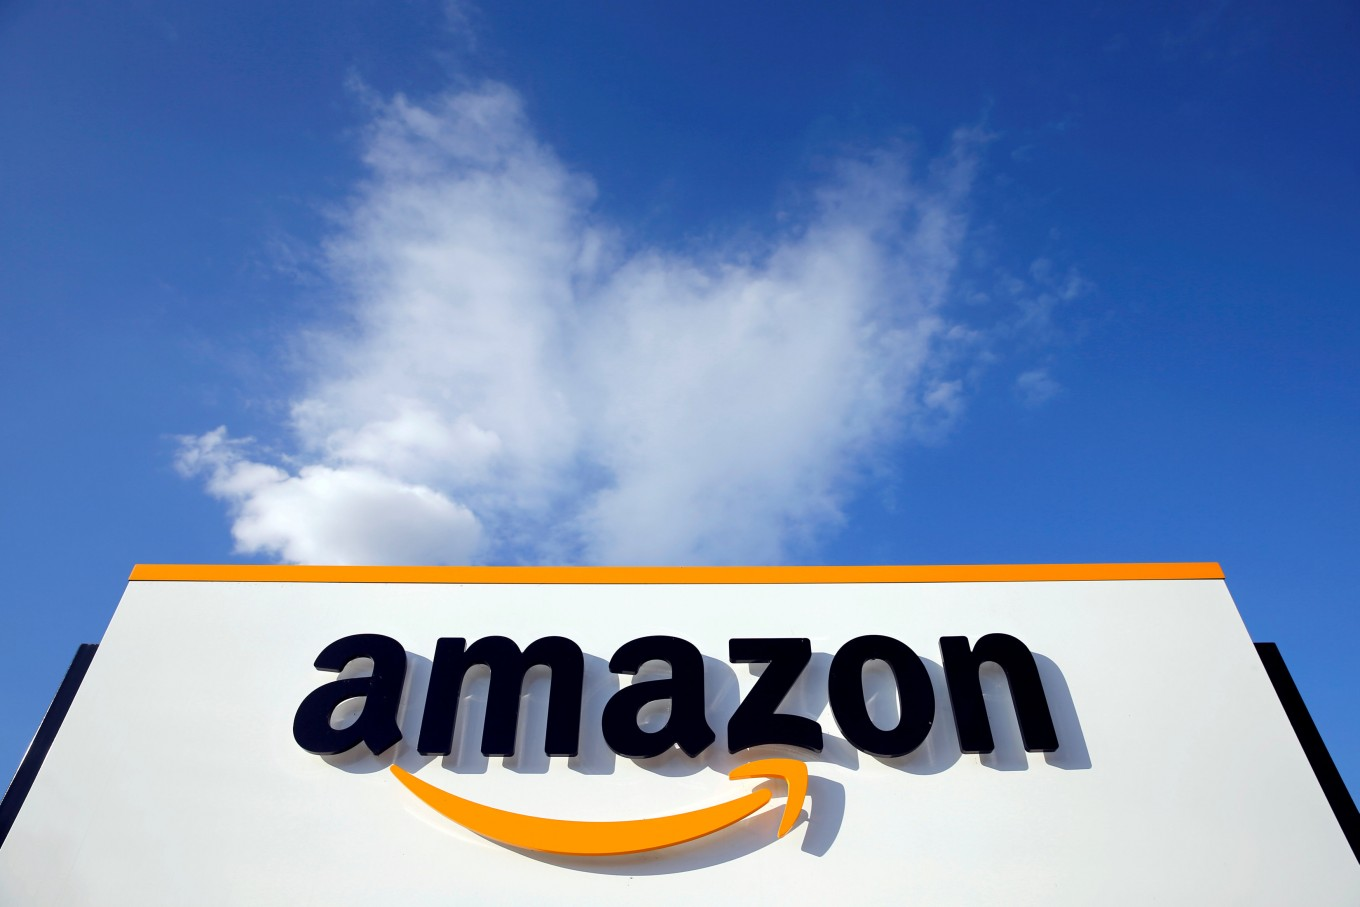 Amazon to open cloud data centers in Indonesia